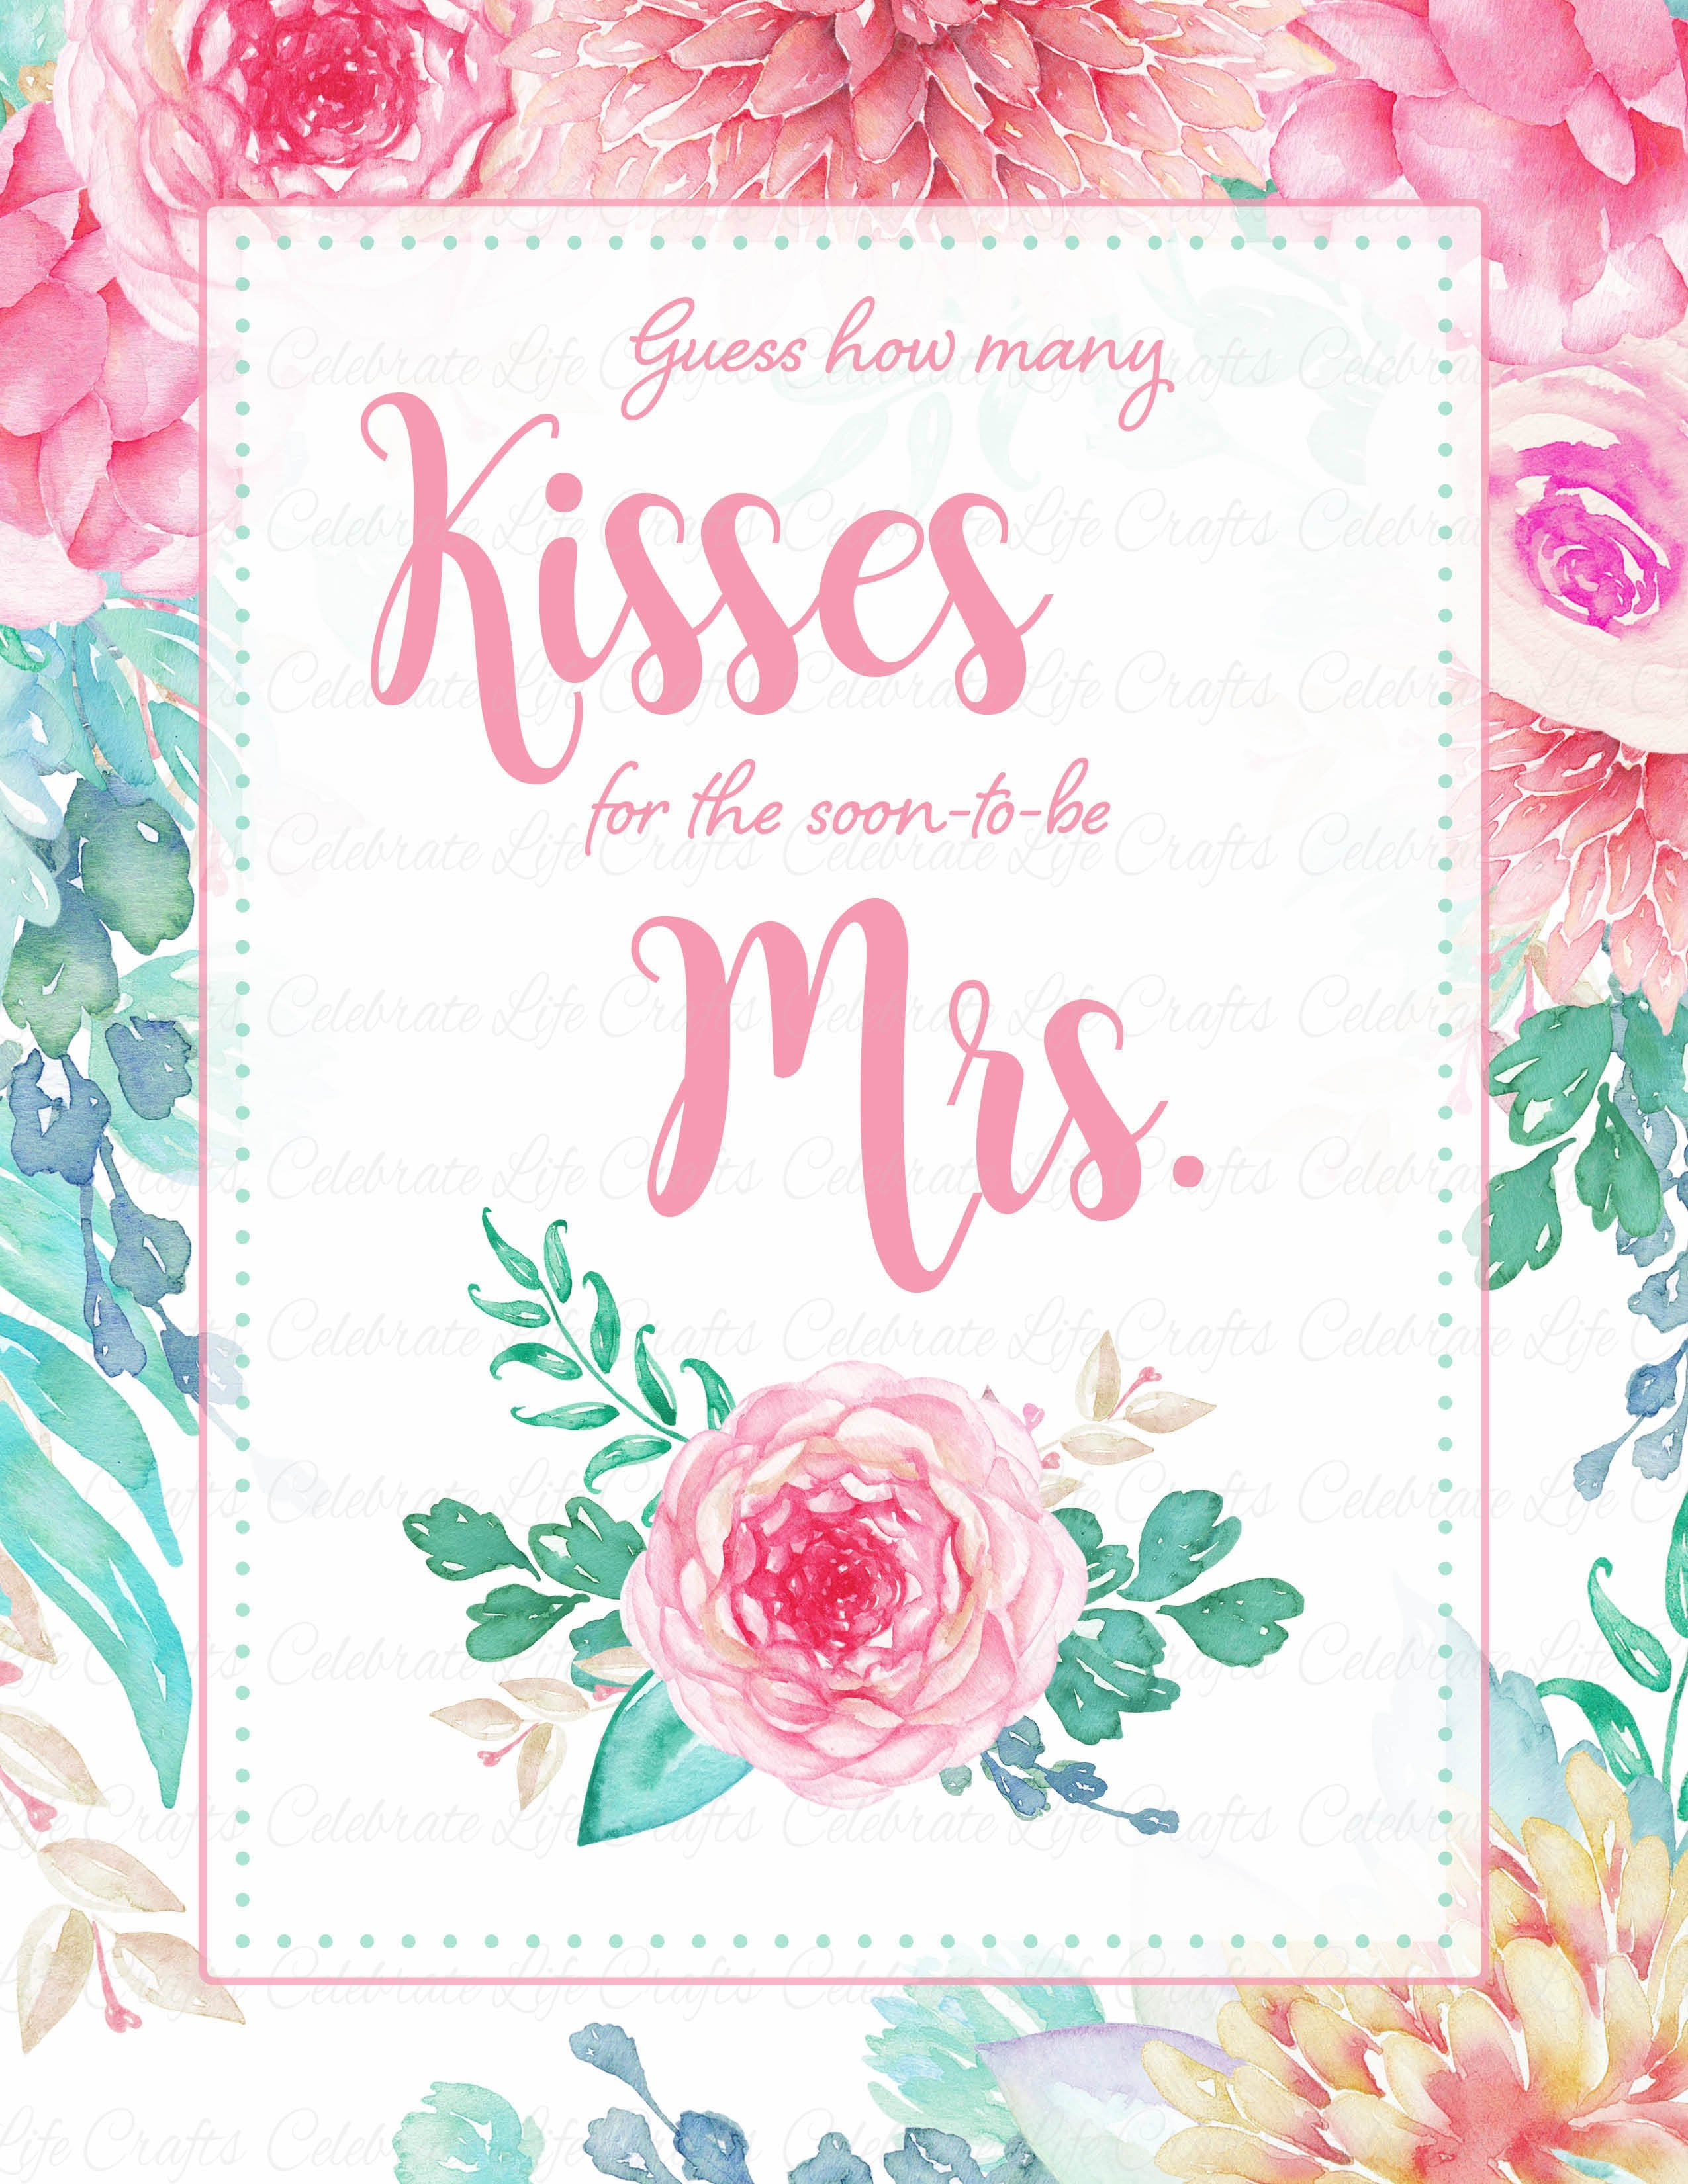 kitchen june bridal com invitations photos beautiful shower recipe of cards advice pictures